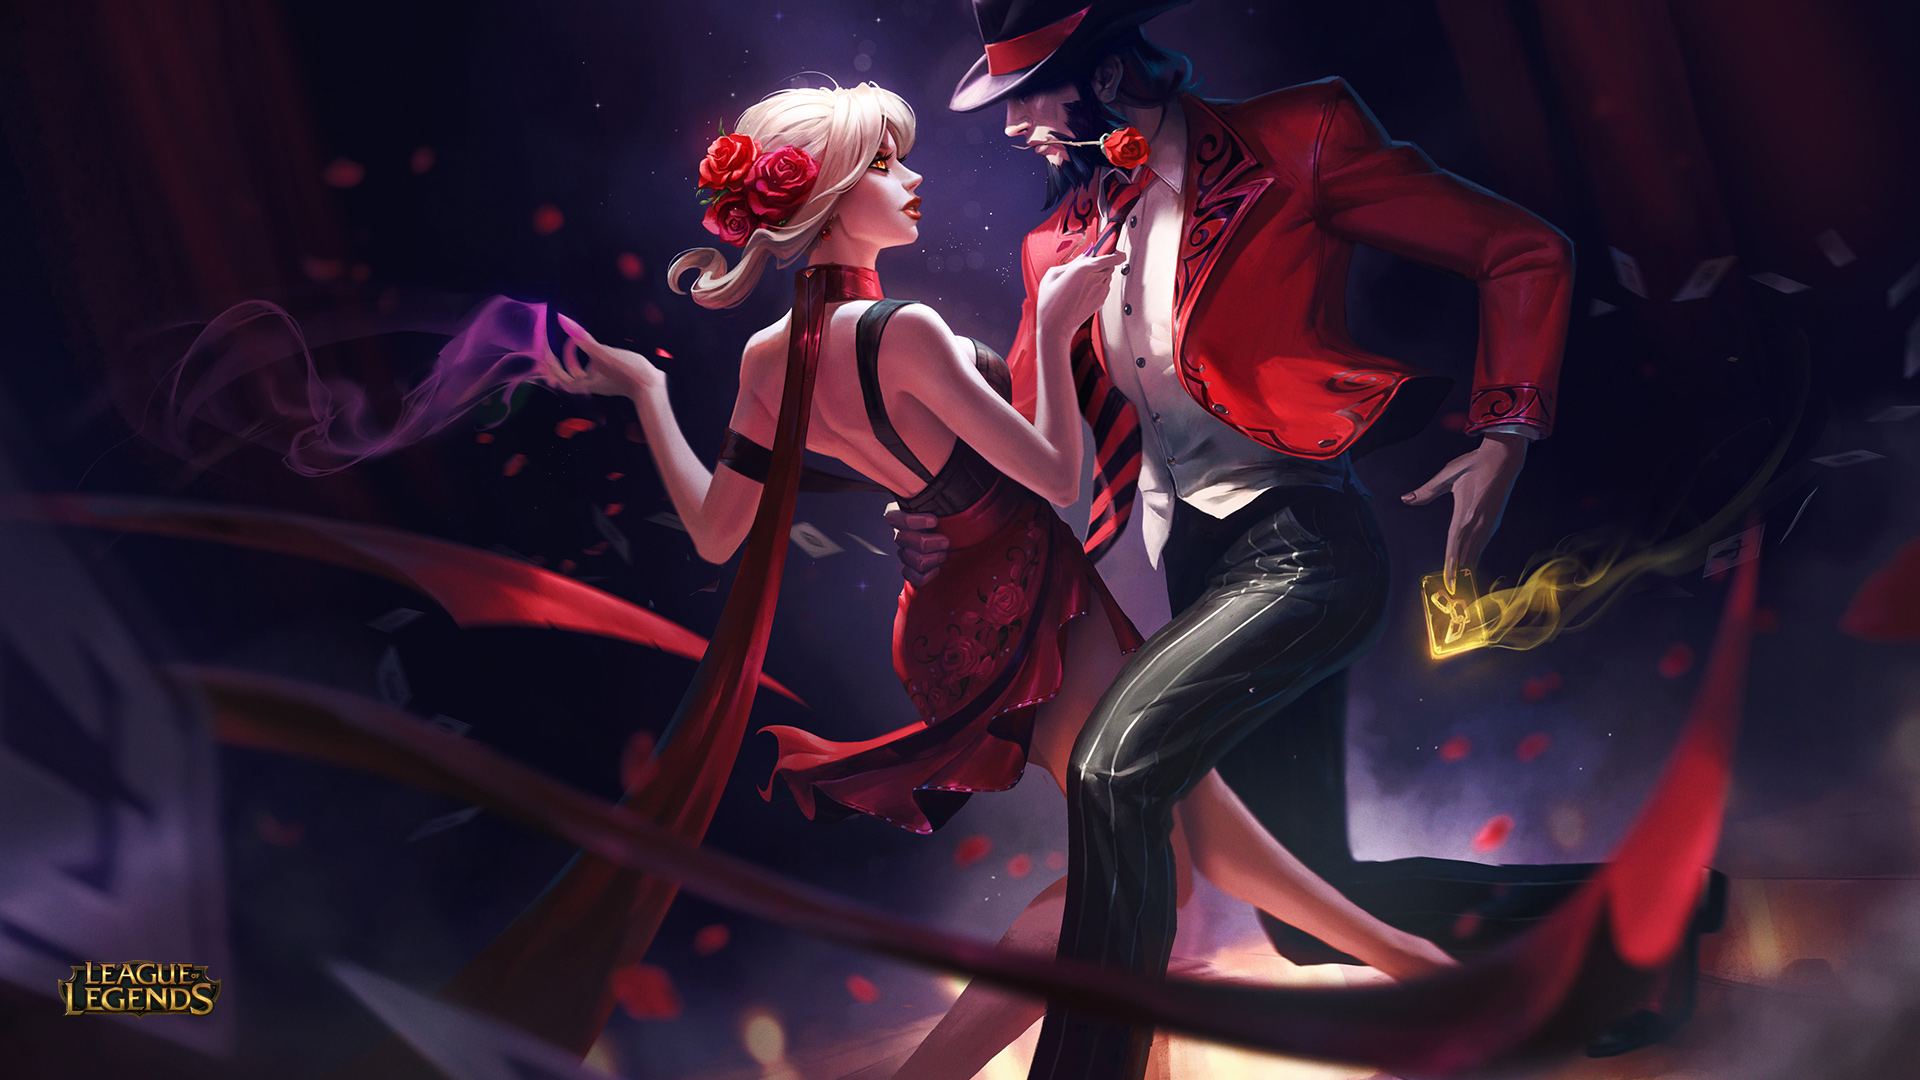 Evelynn And Twisted Fate League Of Legends Hd Games 4k